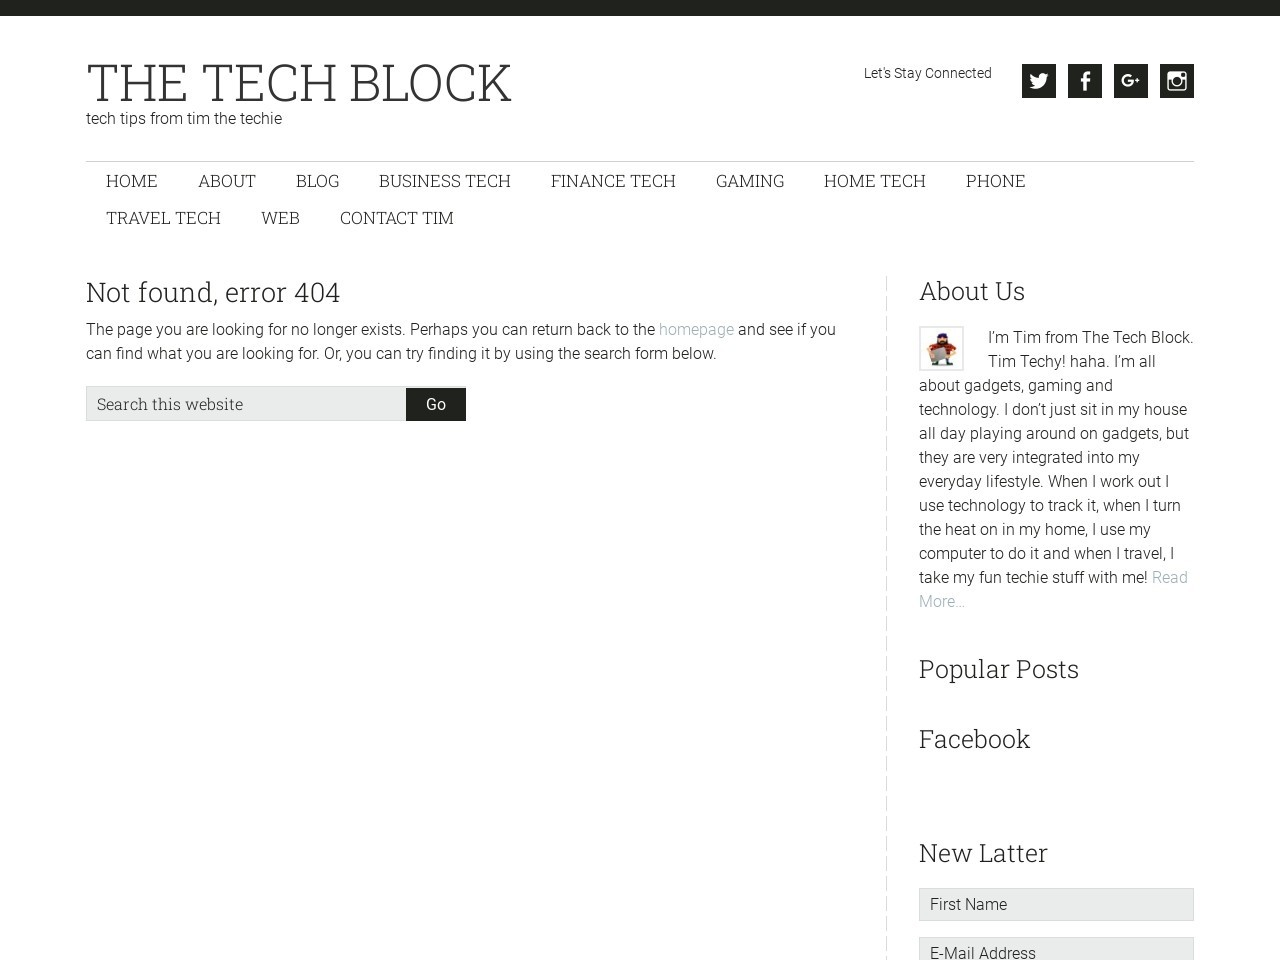 Learning iOS as an Android developer | The Tech Block